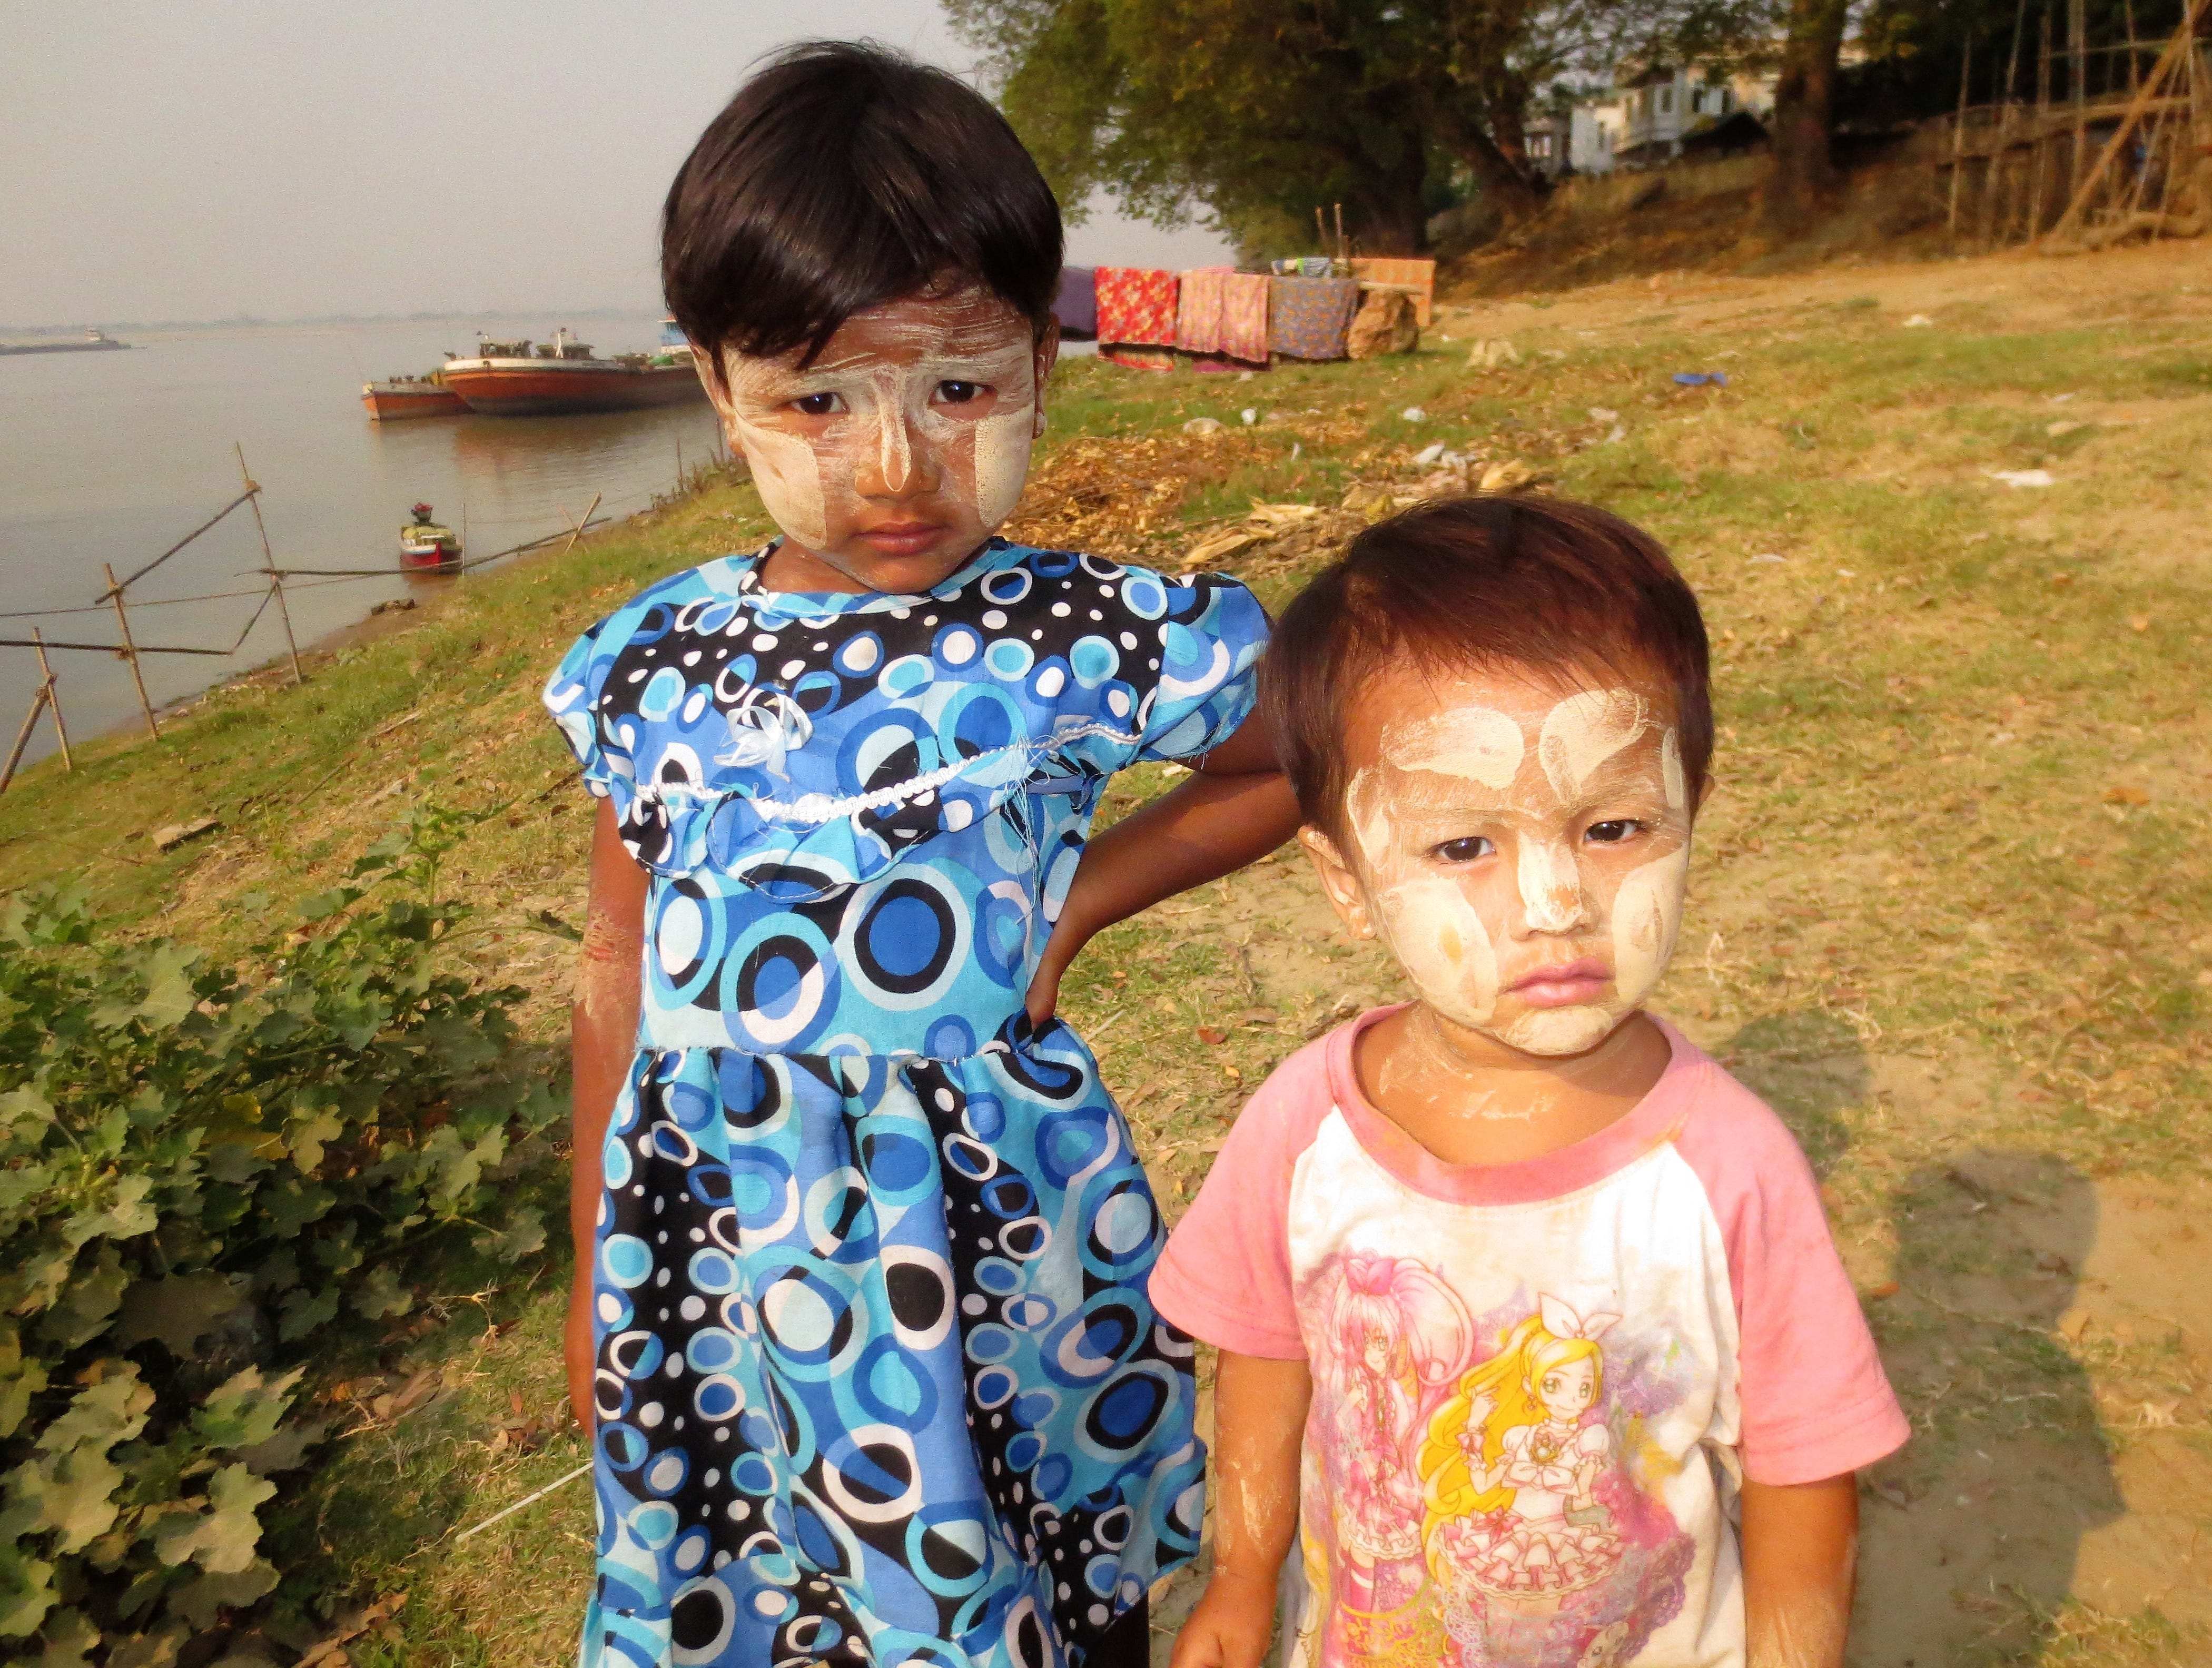 Many Burmese people, including these children who live in a village on the Irrawaddy River, cover their faces with a distinctive makeup called thanaka, made from ground tree bark.